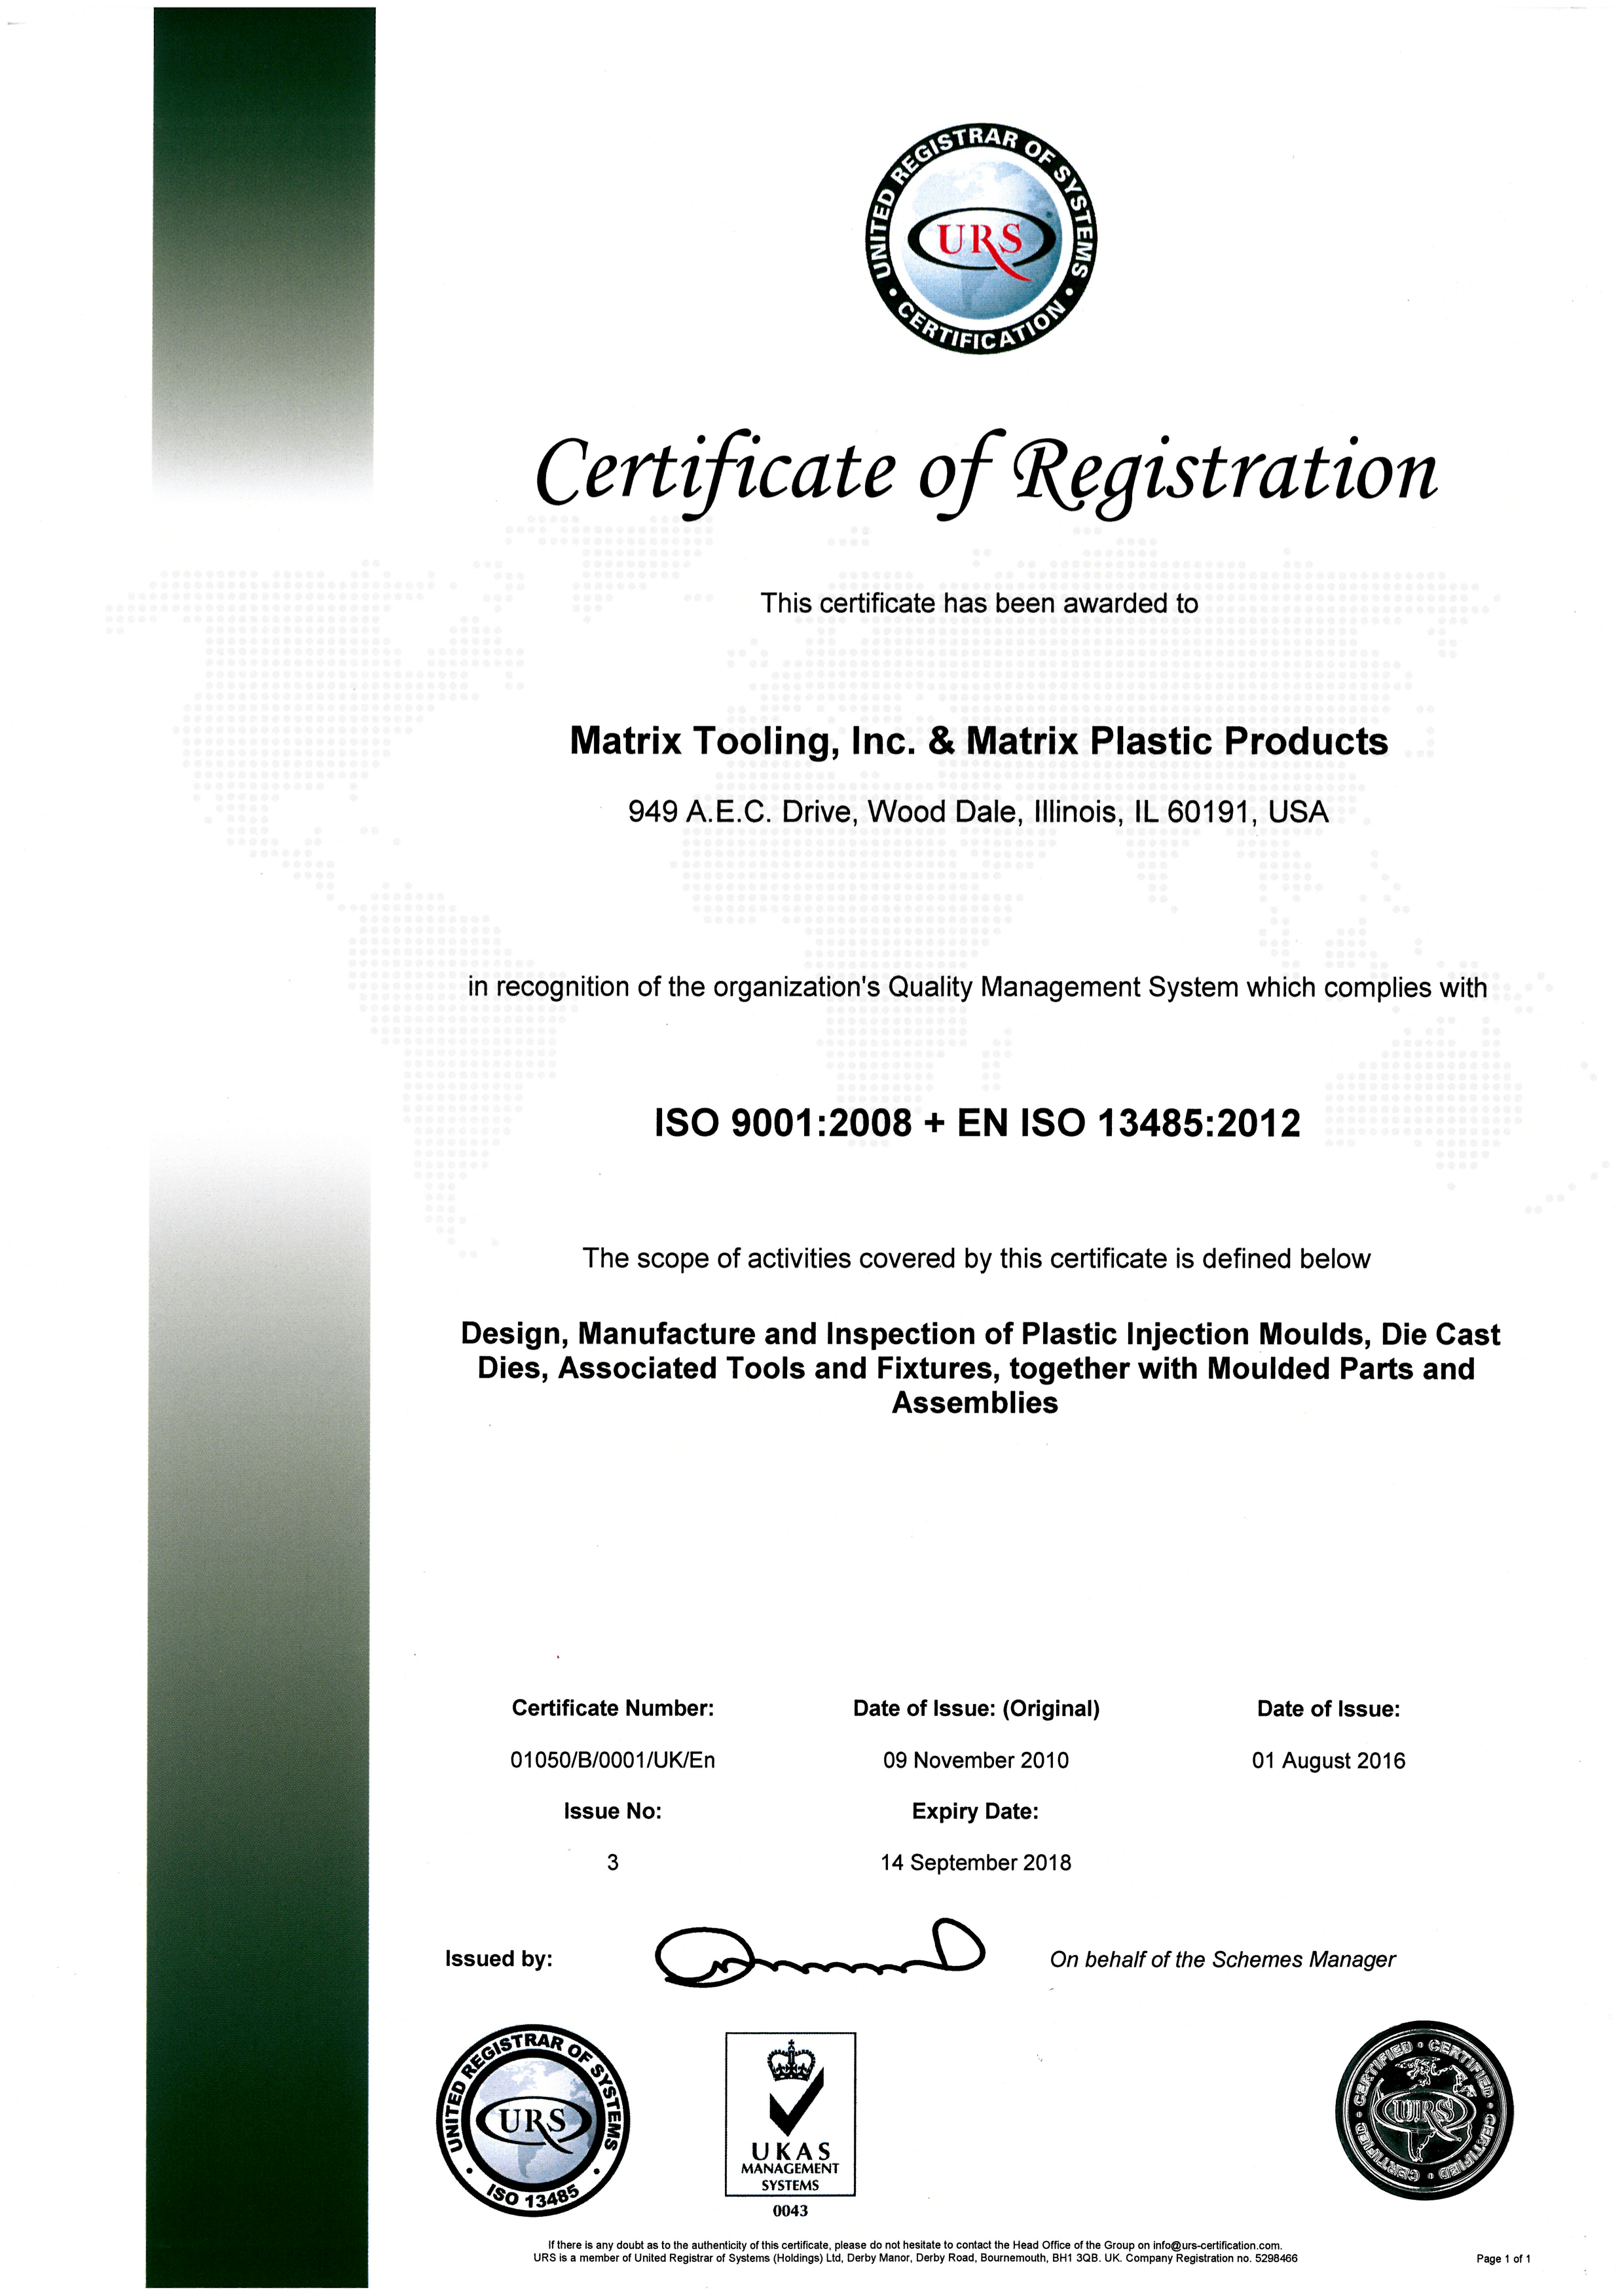 matrixisocertificate9001 2008 13485 2012